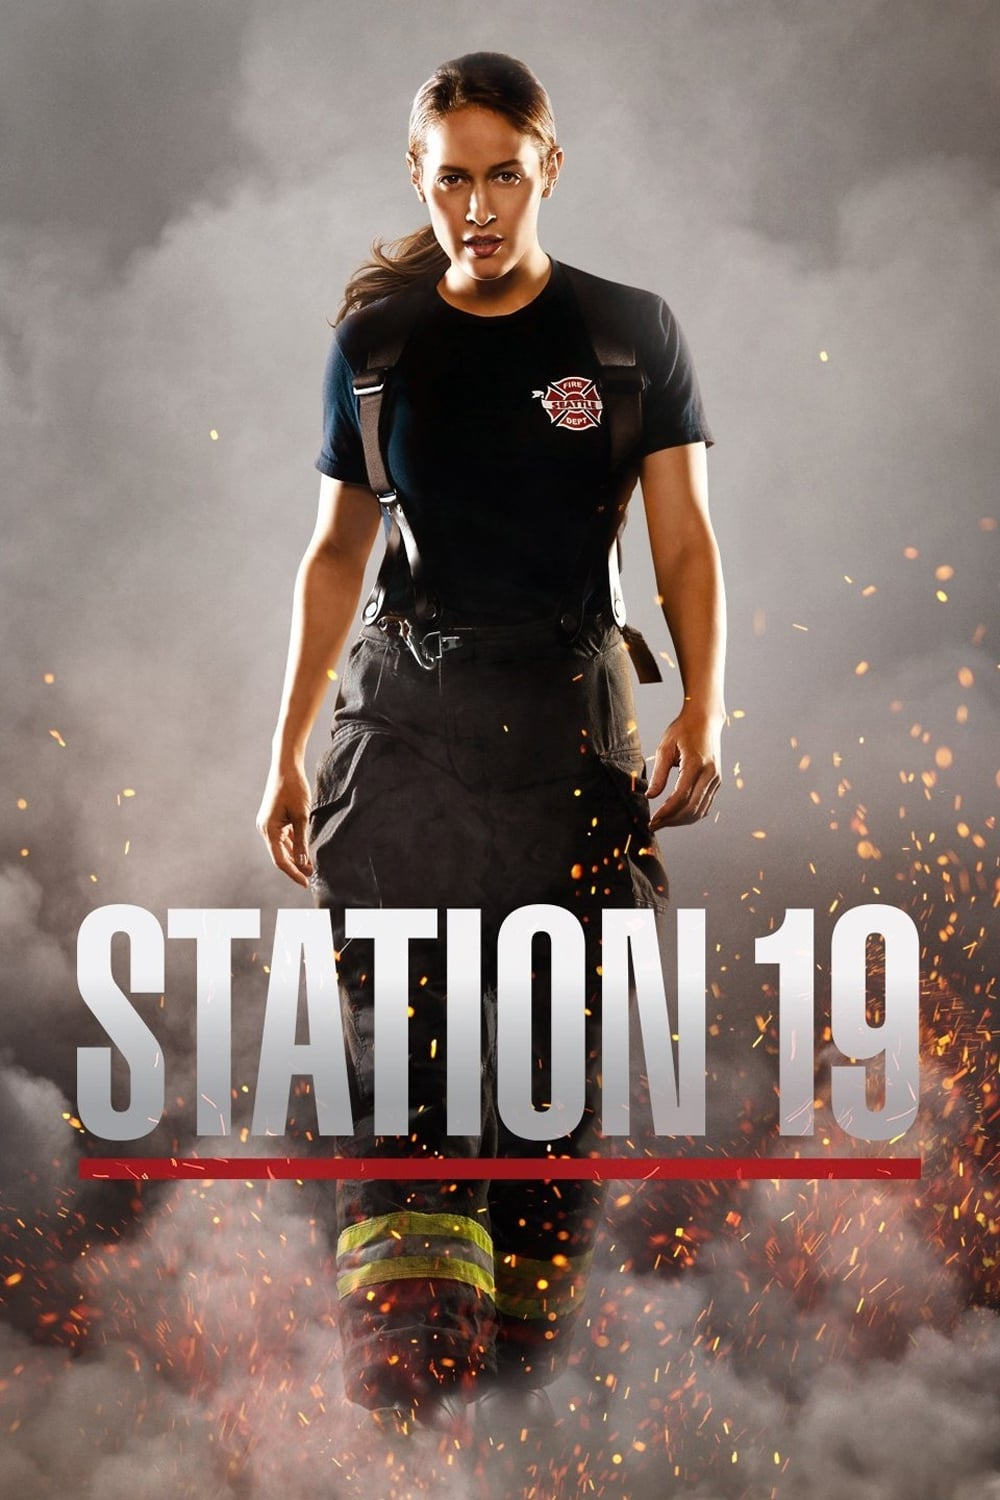 image for Station 19